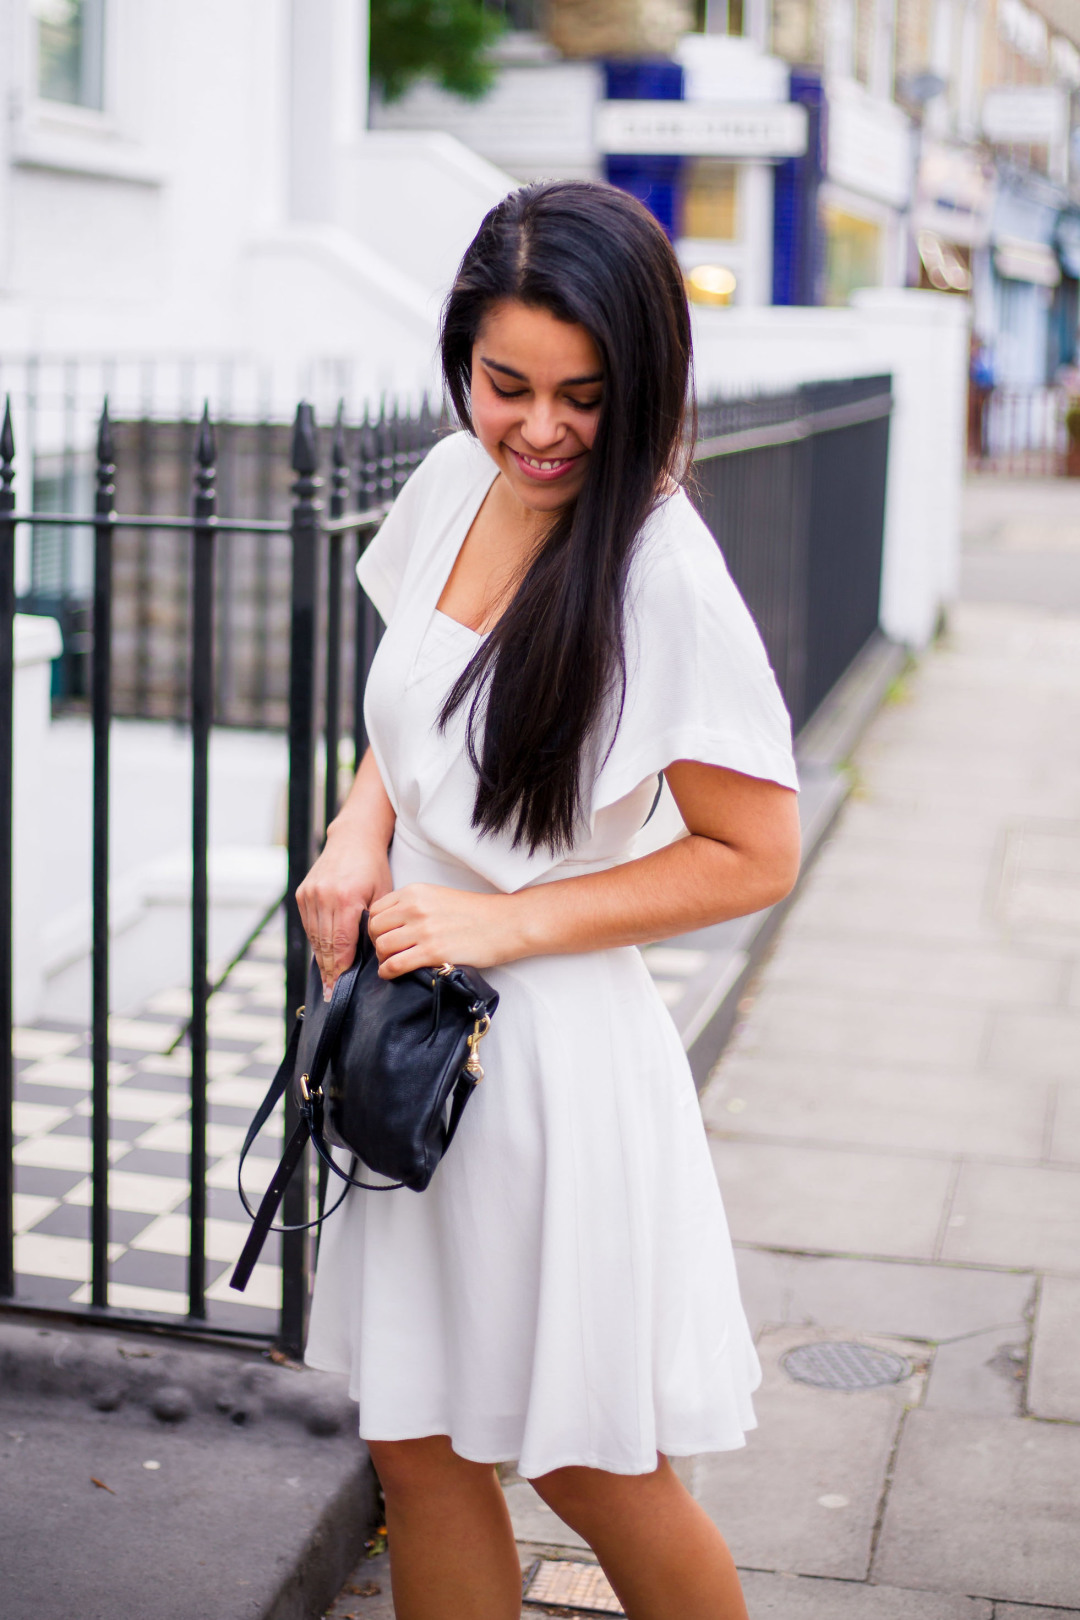 The Litte White Dress